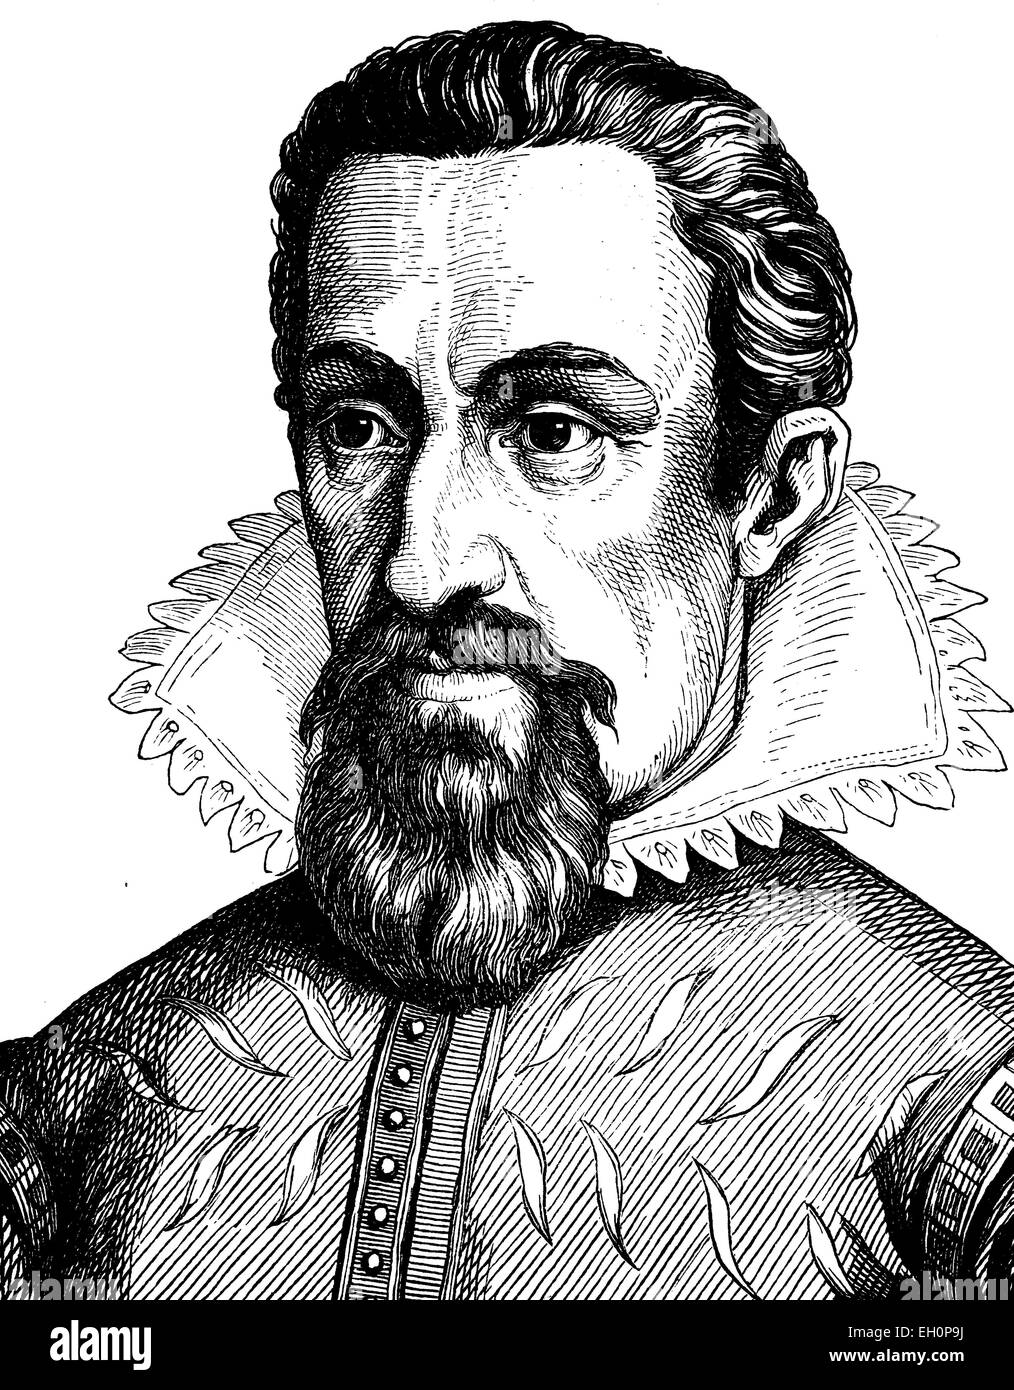 Digital improved image of Johannes Kepler, 1571 - 1631, portrait, historic illustration, 1880 - Stock Image